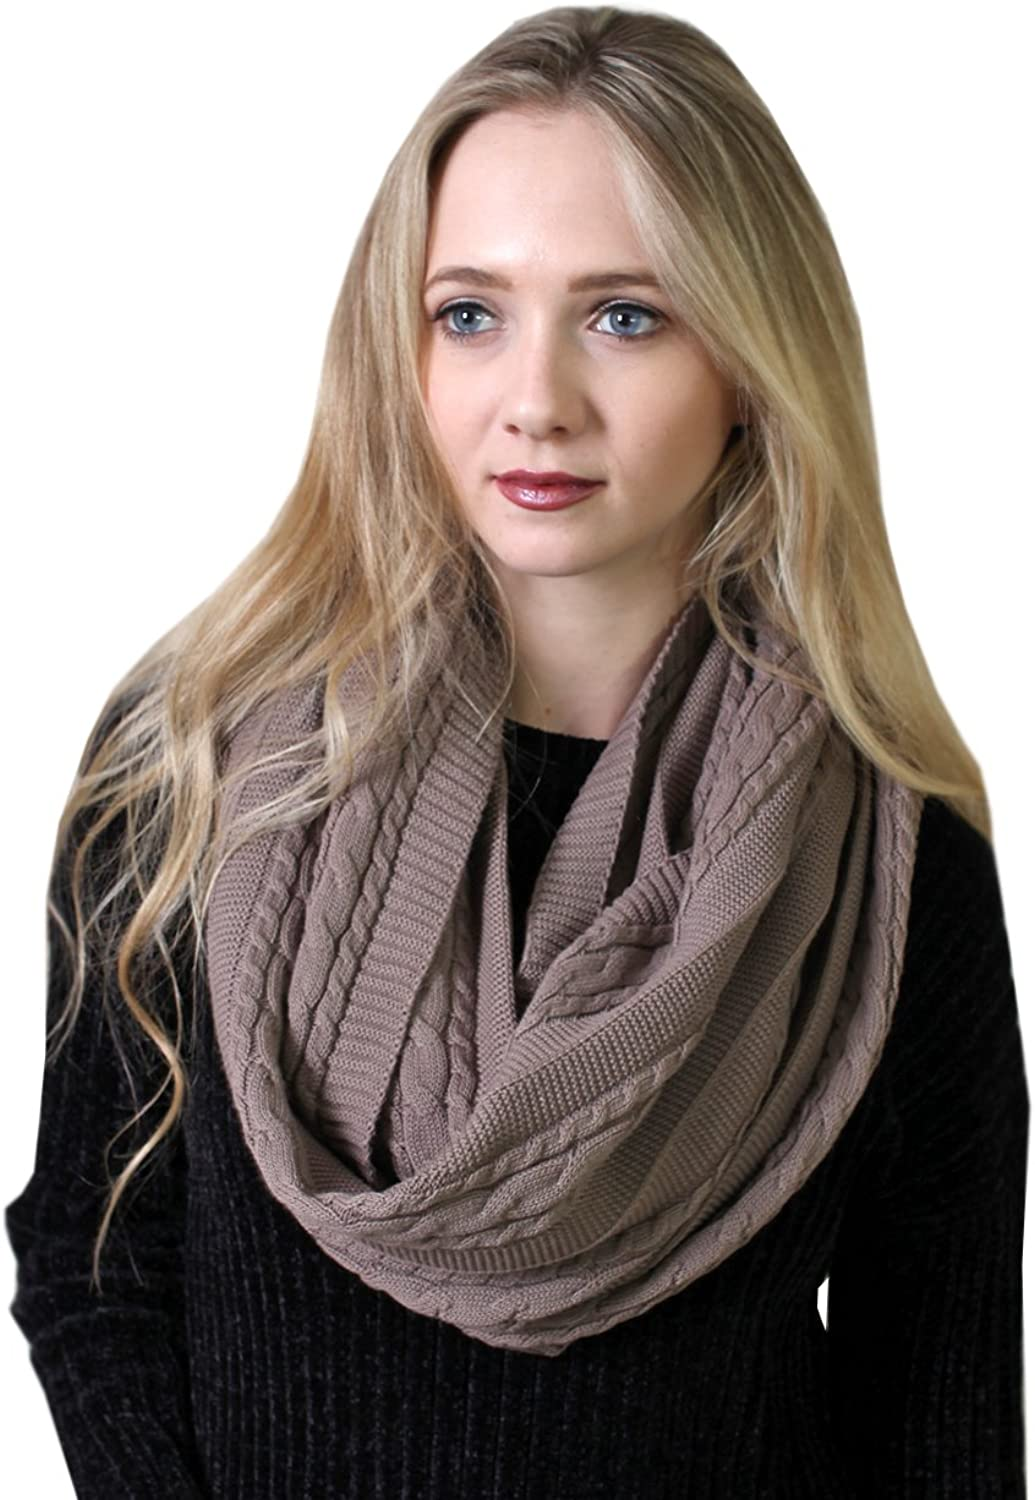 (10 COLORS) 100% Organic Cotton Cable Knit Infinity Scarf, Super Soft Thick Warm Classic NonToxic